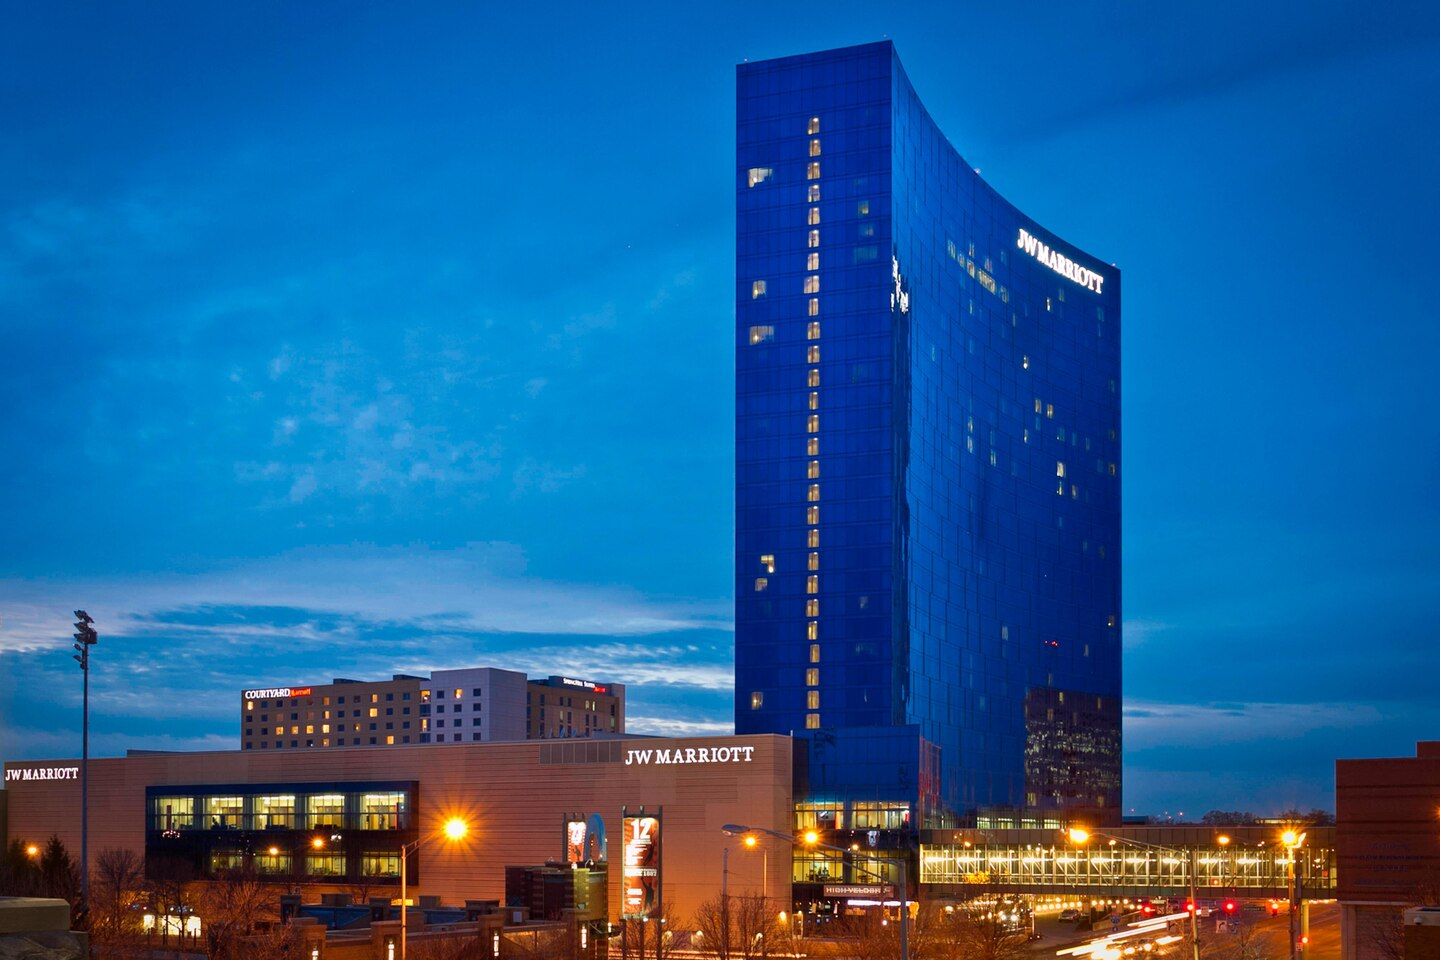 JW Marriott Indy Exterior